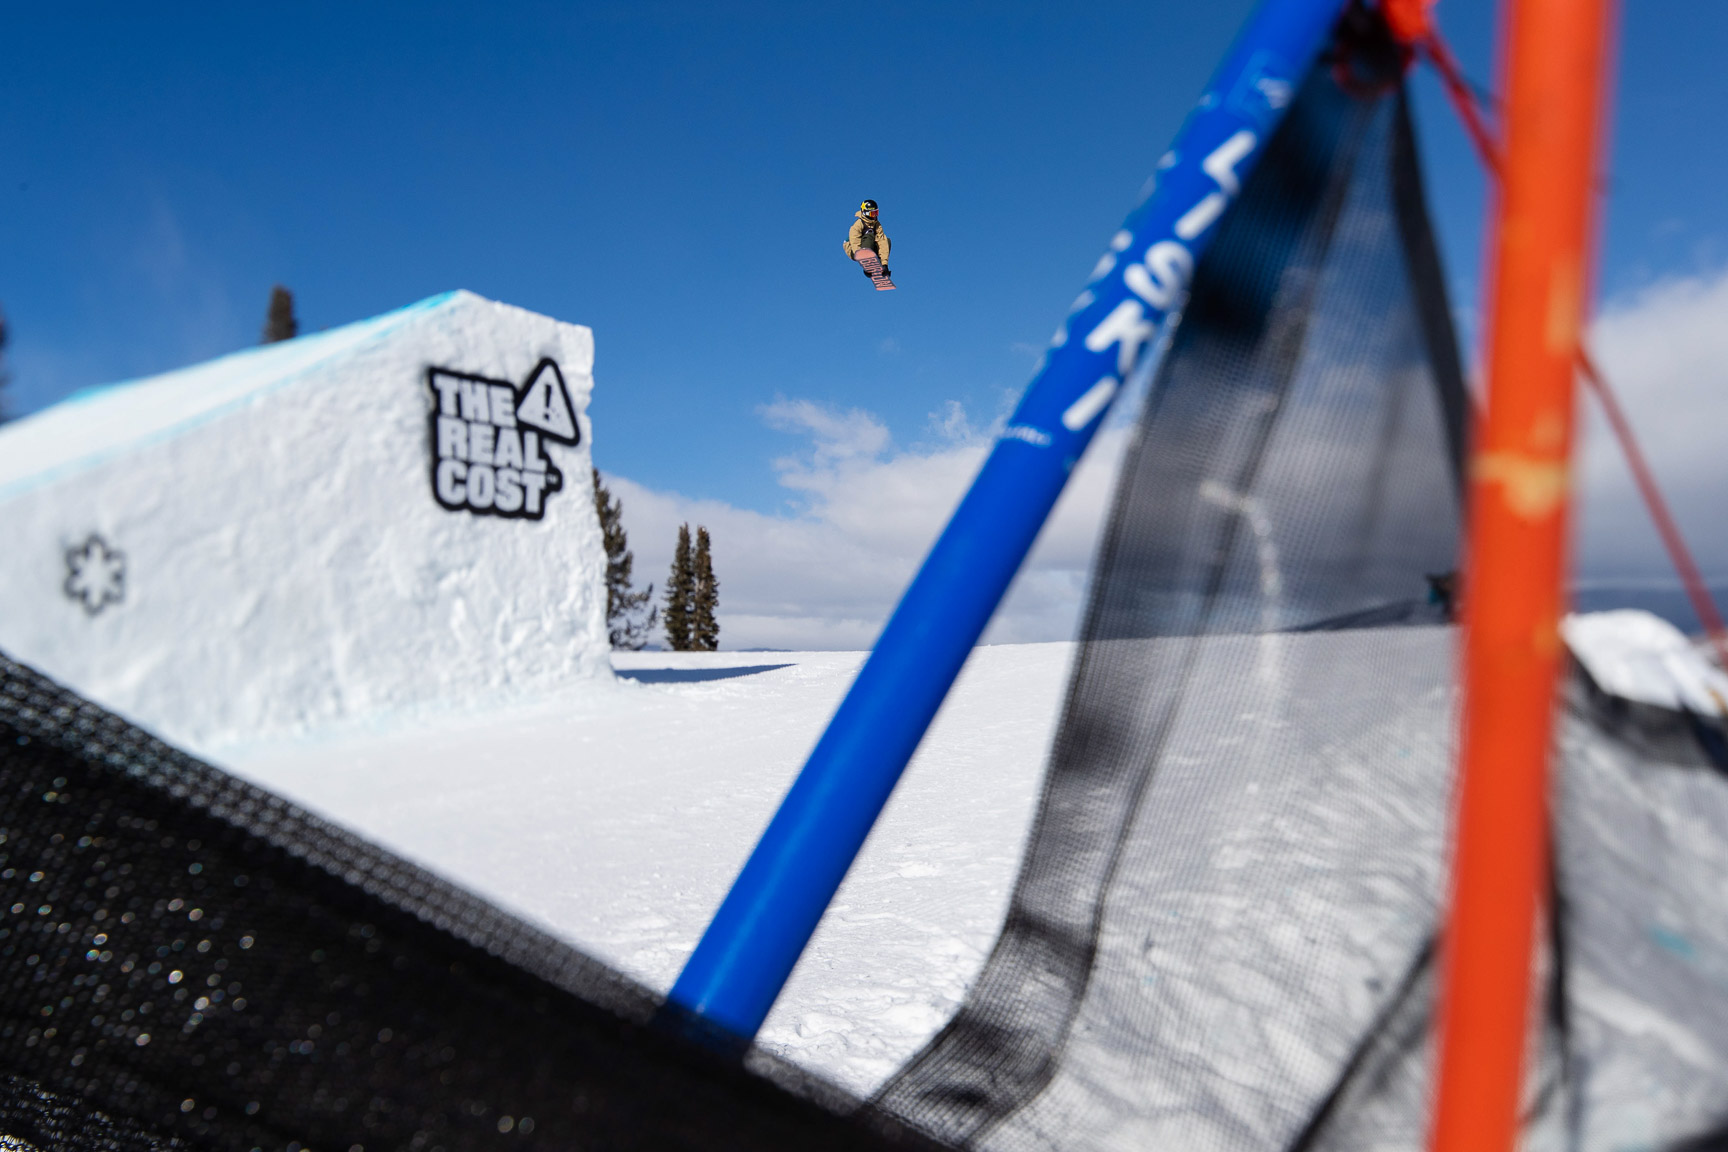 Mikey Ciccarelli, Men's Snowboard Slopestyle